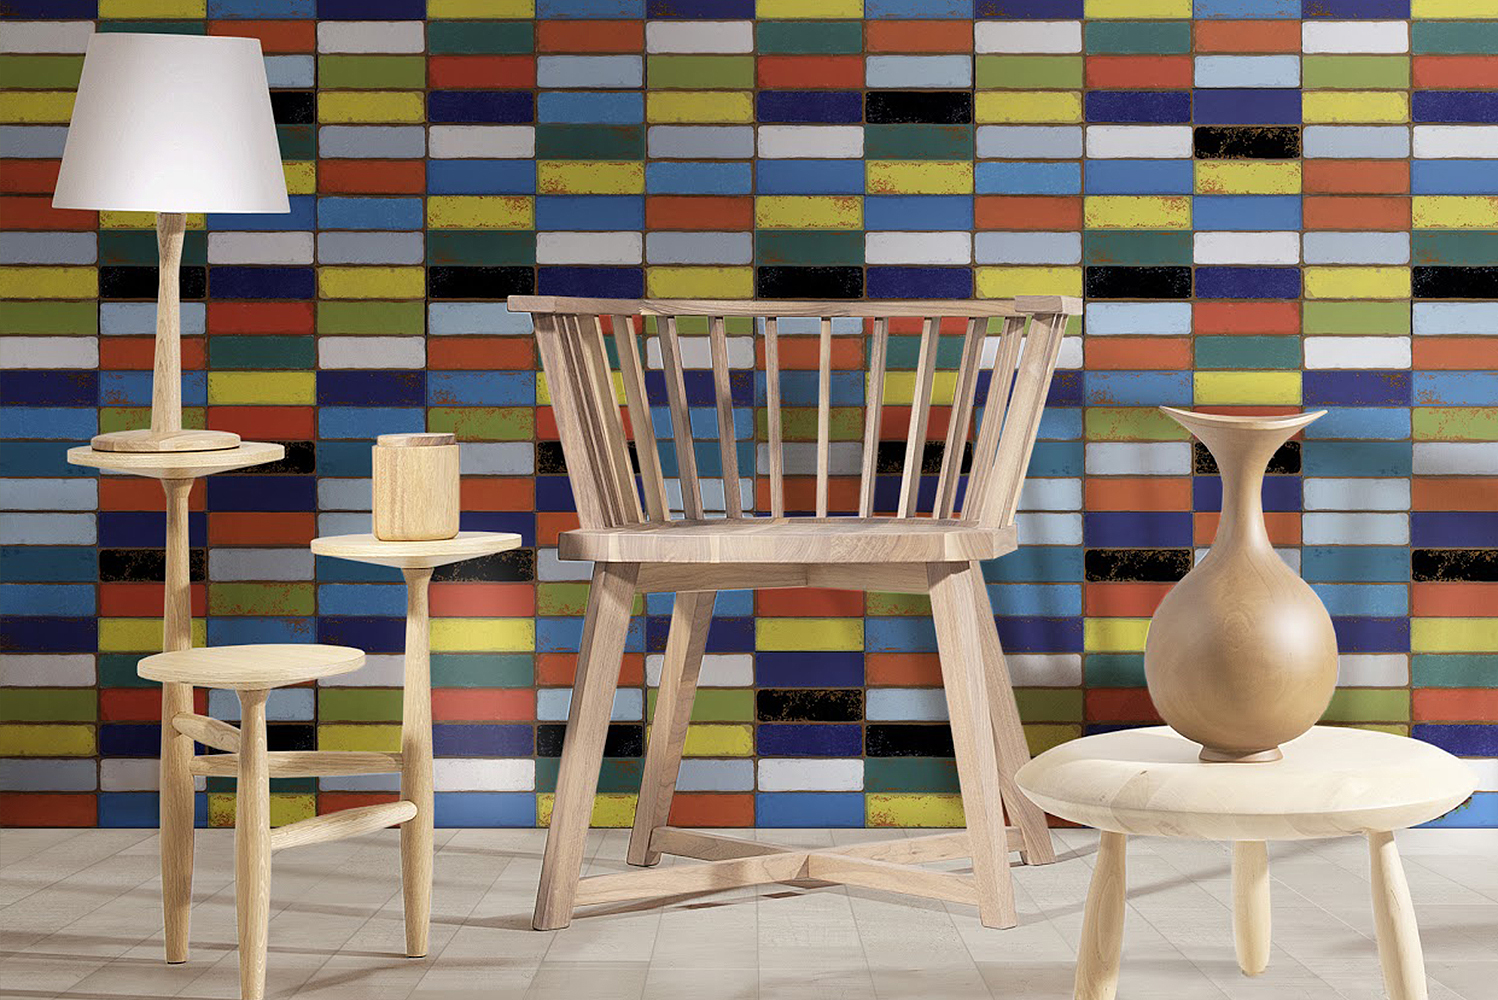 Designed to emulate the look of painted weathered brick, the new collection's 16 color options can be arranged in a variety of combinations.